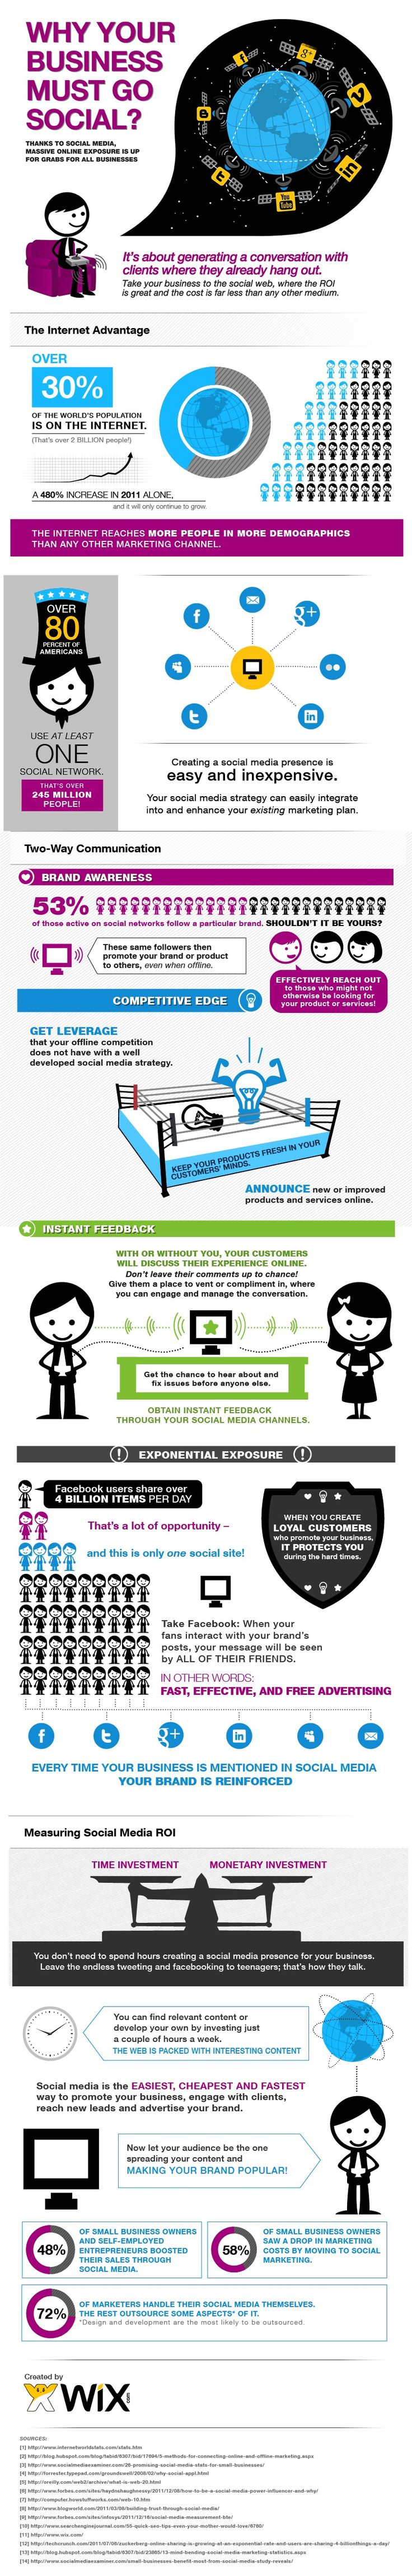 Why Your Business MUST Go Social -- fantastic infographic with eye-opening stats.